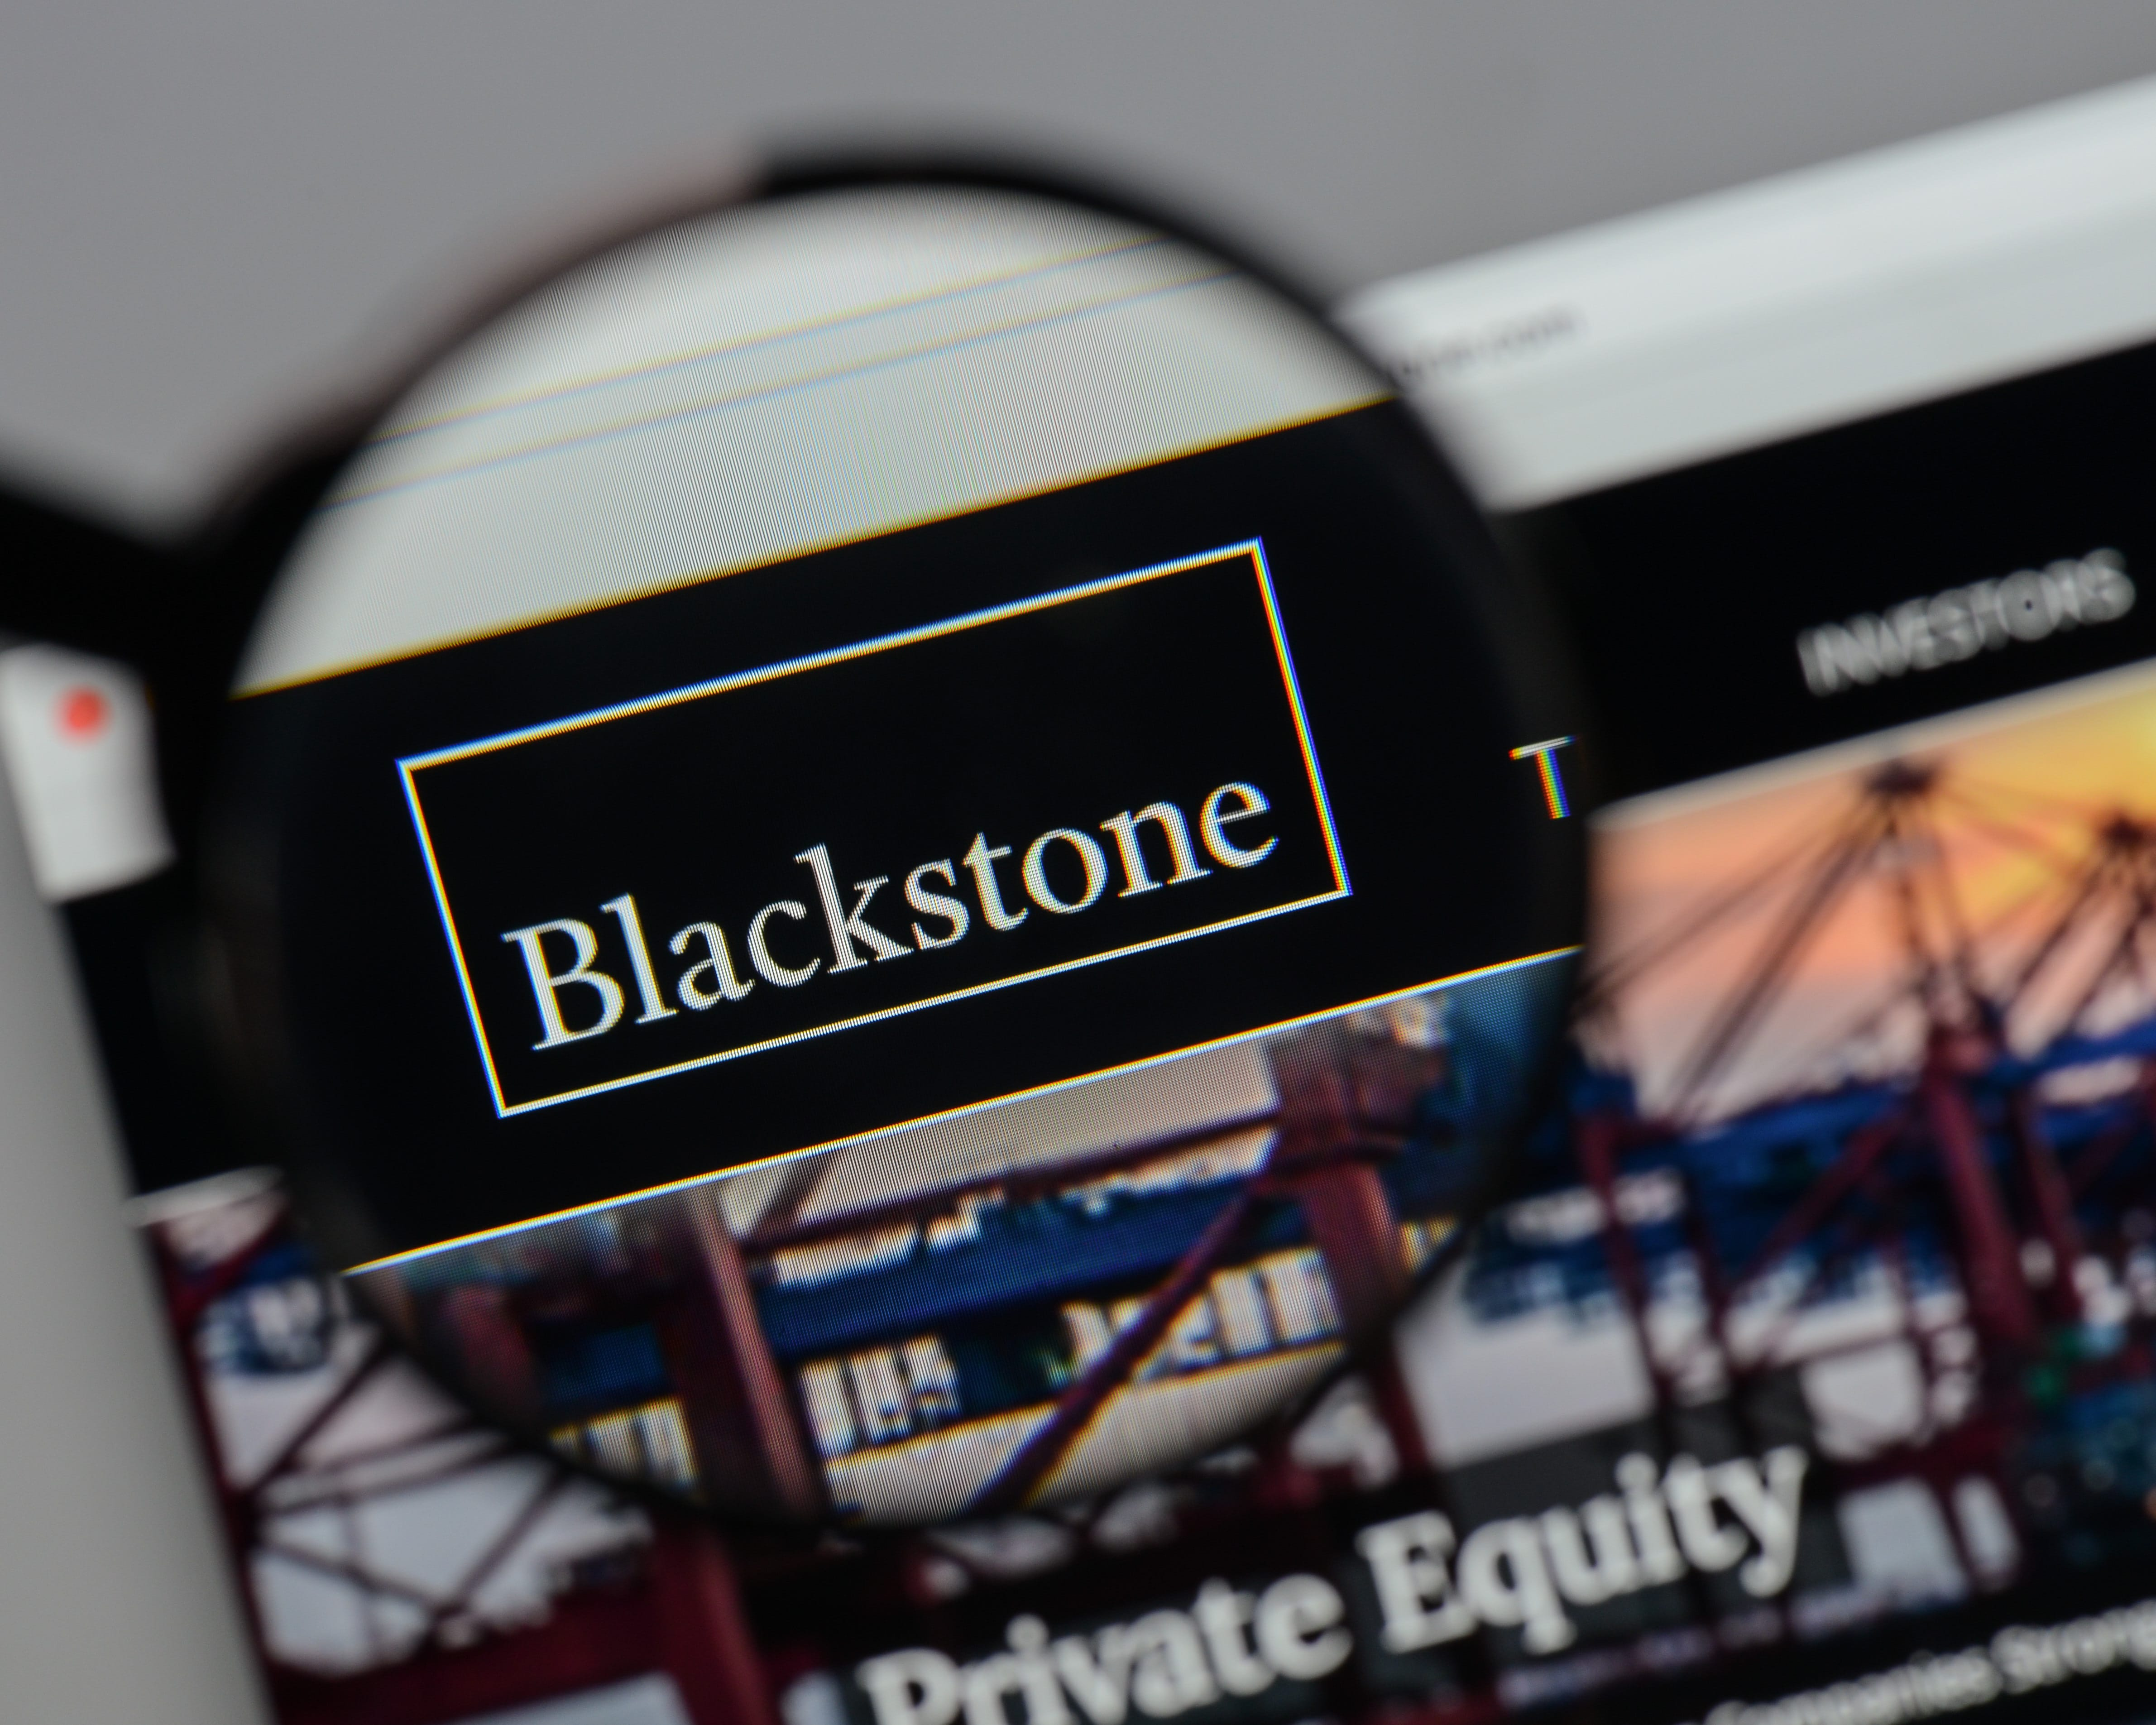 Blackstone Acquires Colony Capital Warehouses for $5.9B as Colony Preps for All Digital Future